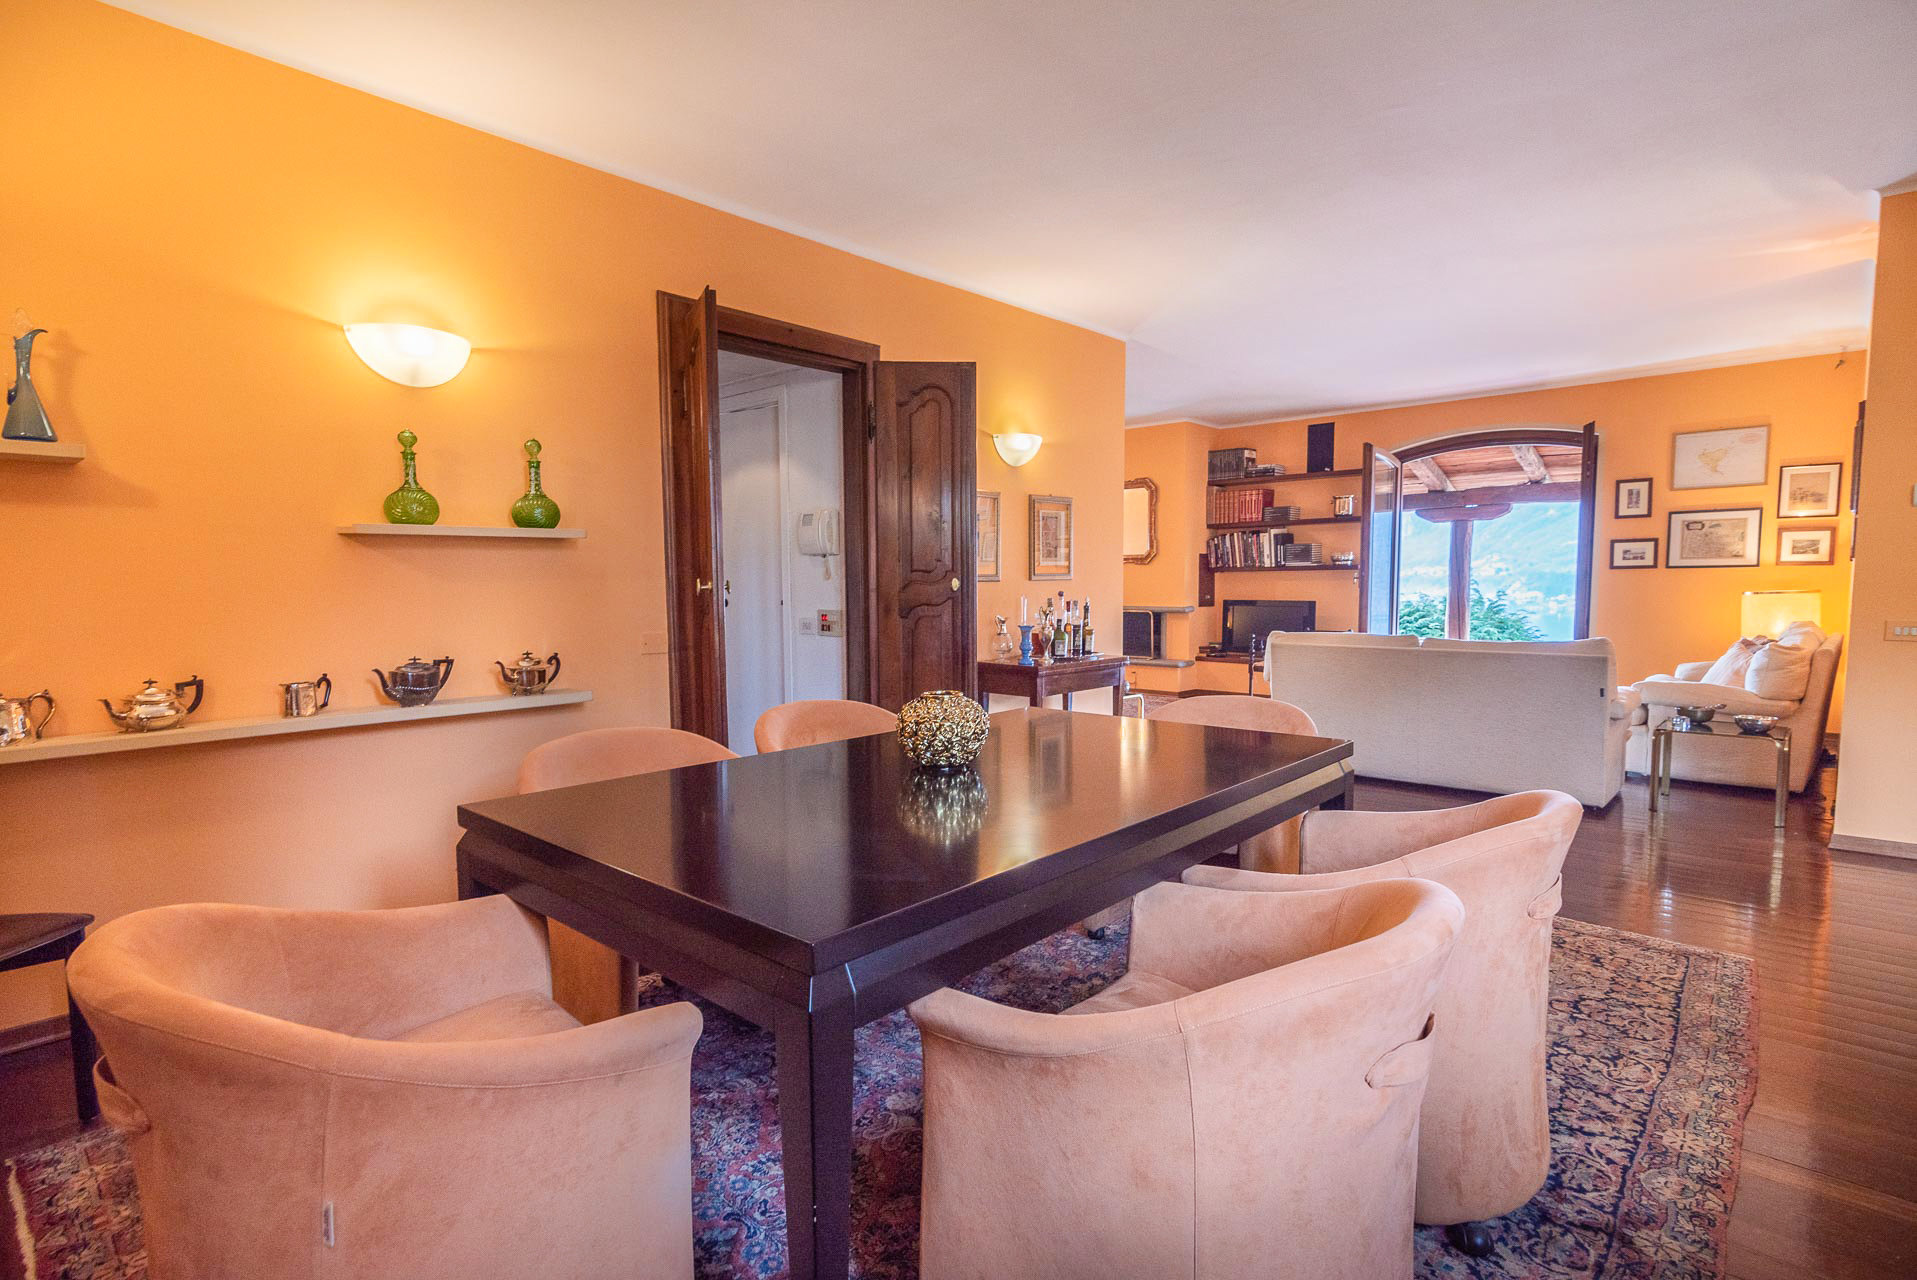 Elegant villa for sale in Pettenasco on Lake Orta - dining room